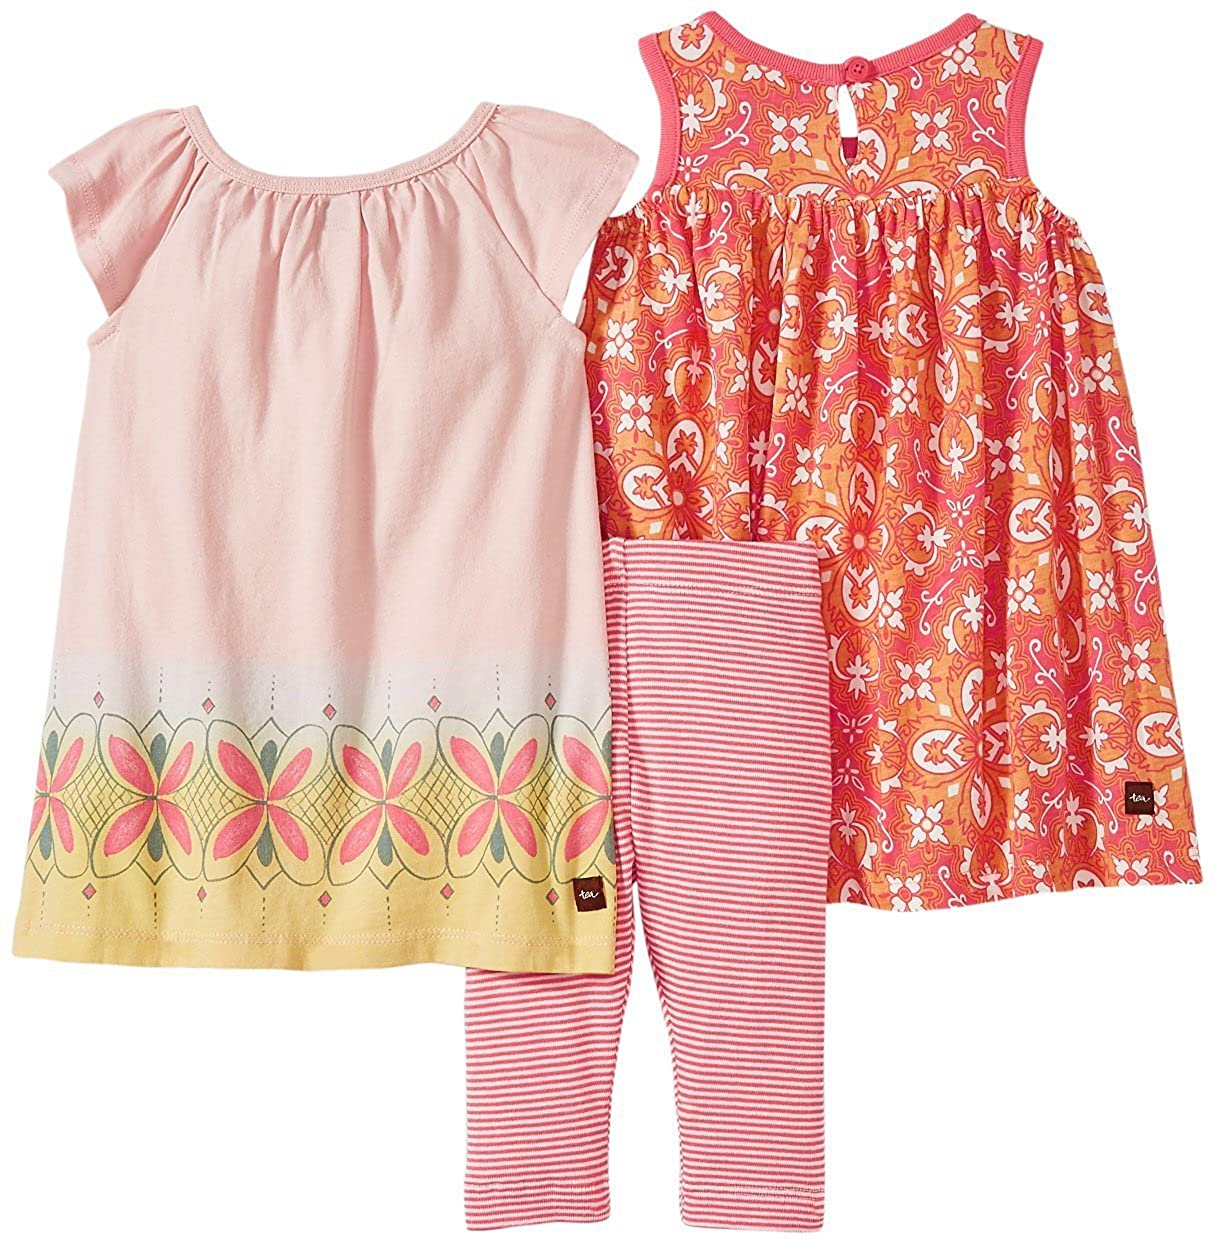 b2520a08e Amazon.com  Tea Collection Baby Girls  Peach Dream Set  Clothing